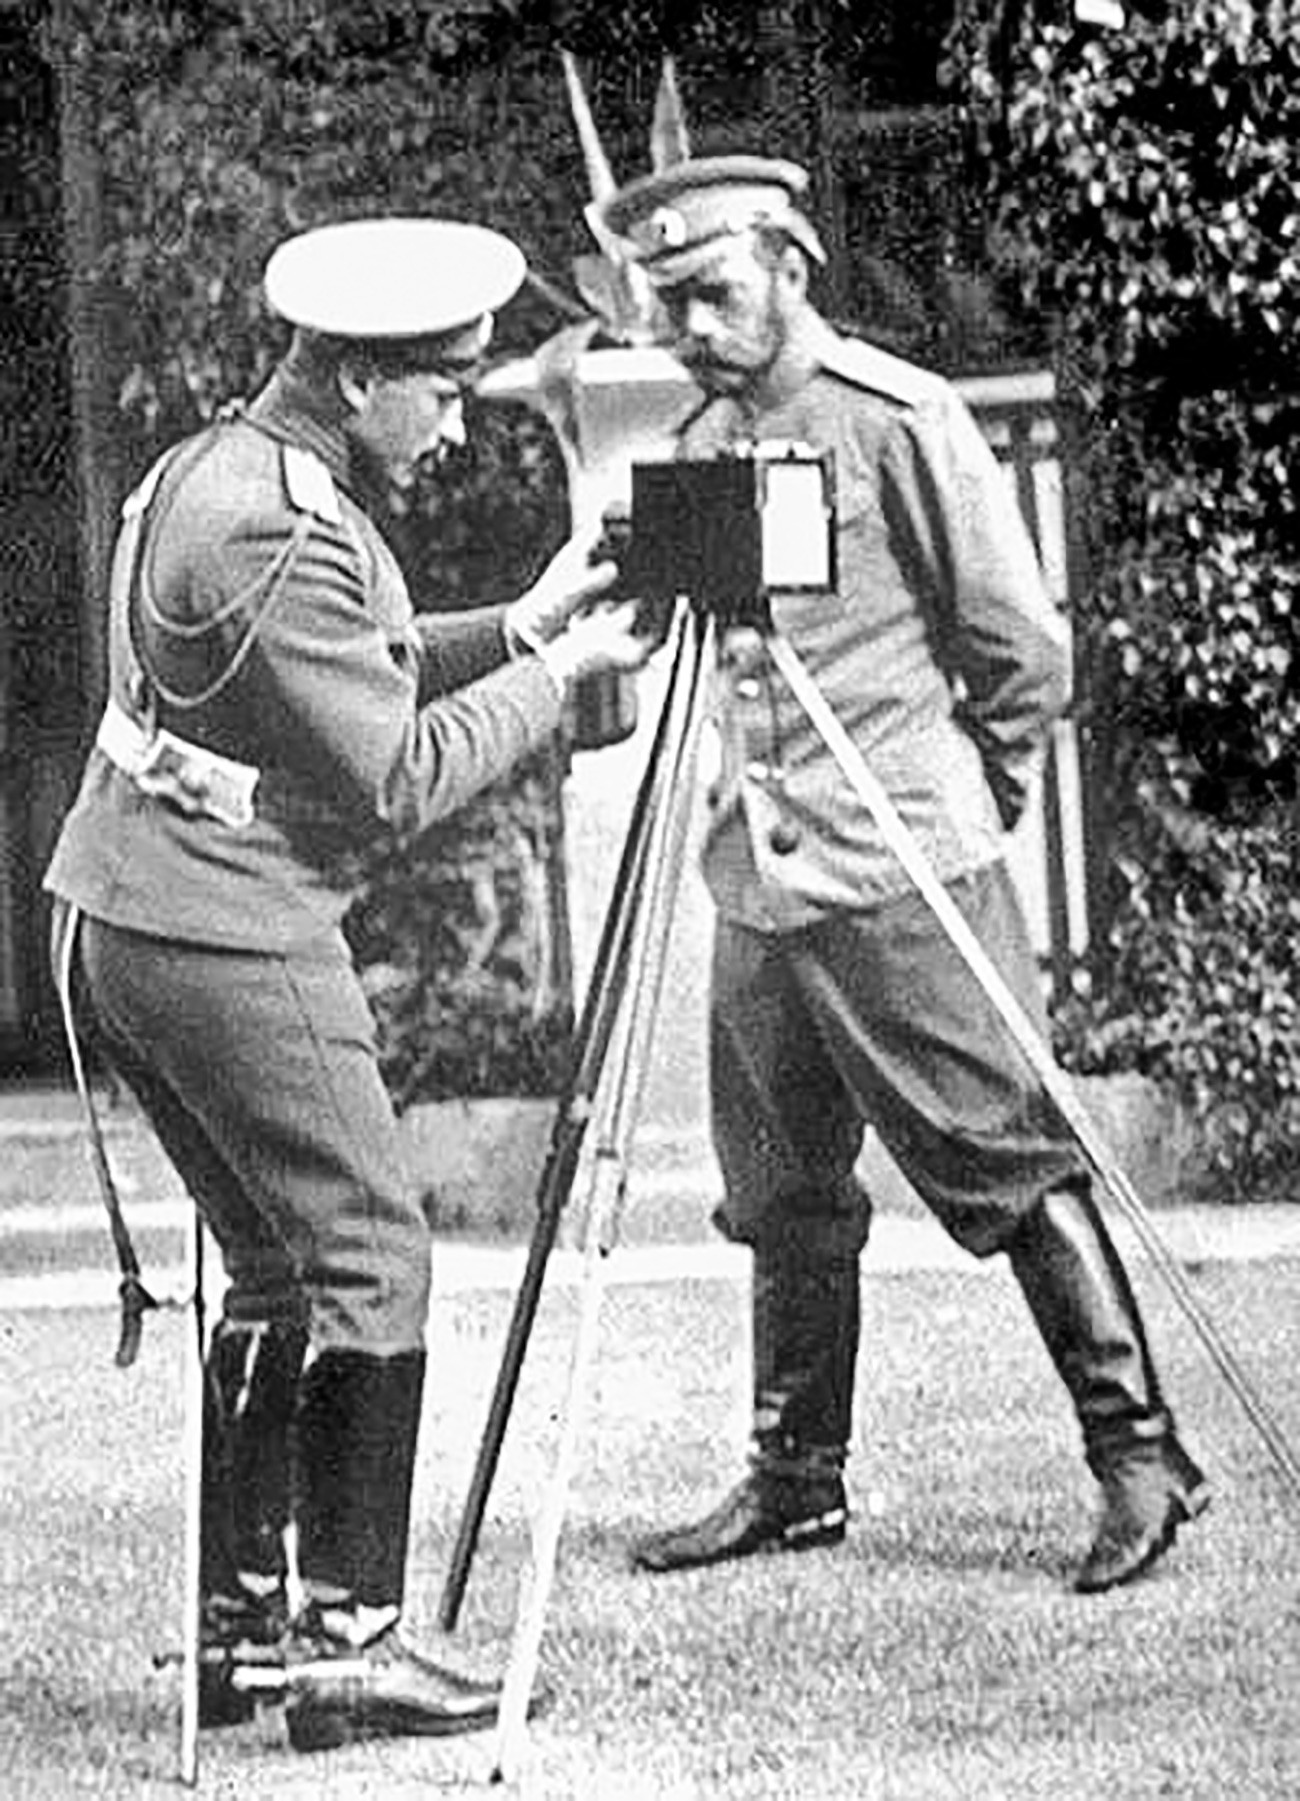 Nicholas II watches as his camera is being placed on a tripod